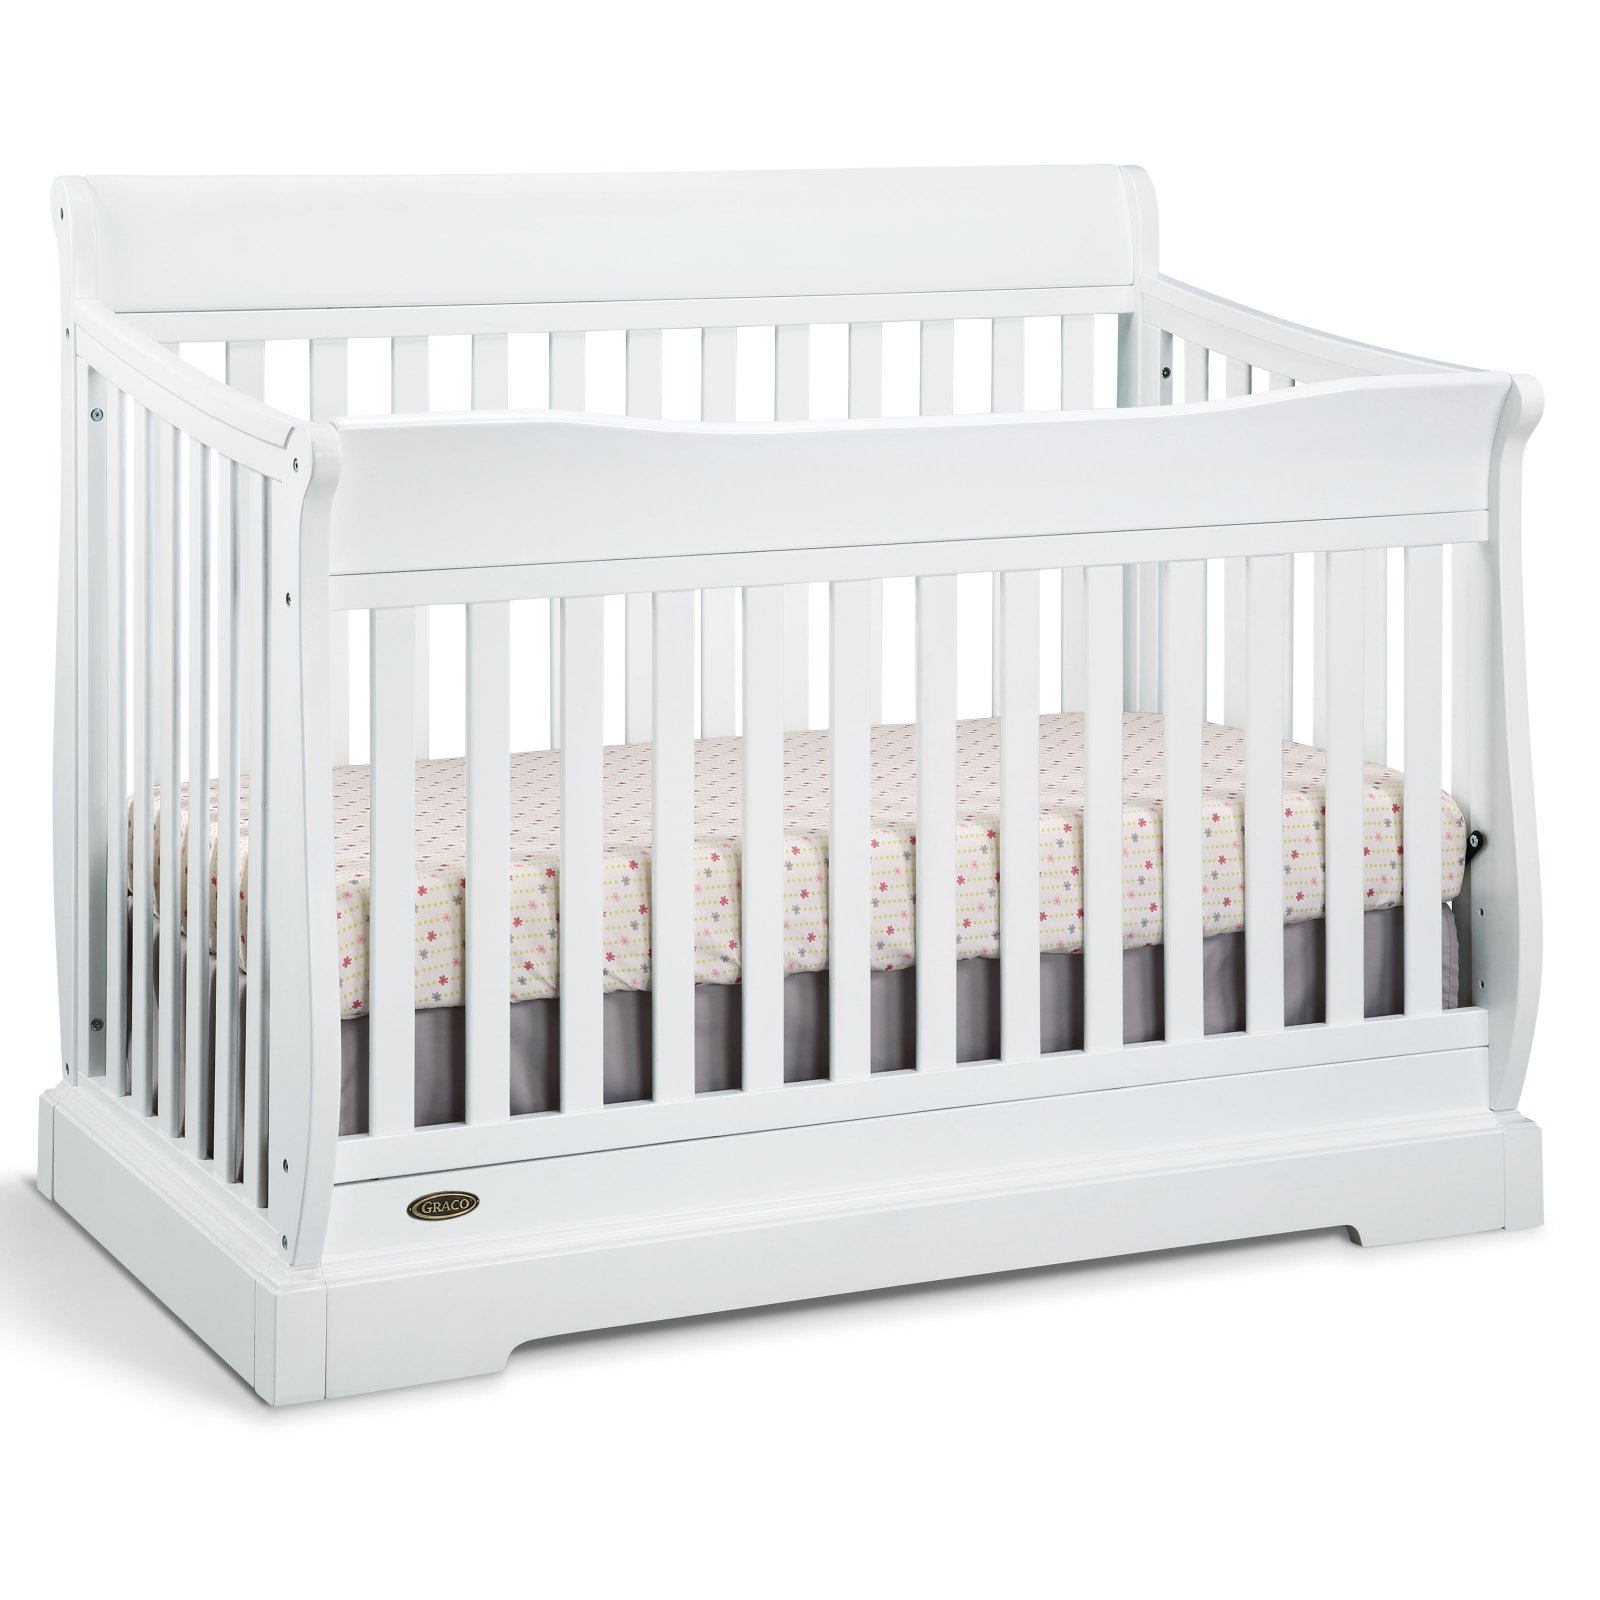 Graco Maple Ridge 4 in 1 Convertible Crib